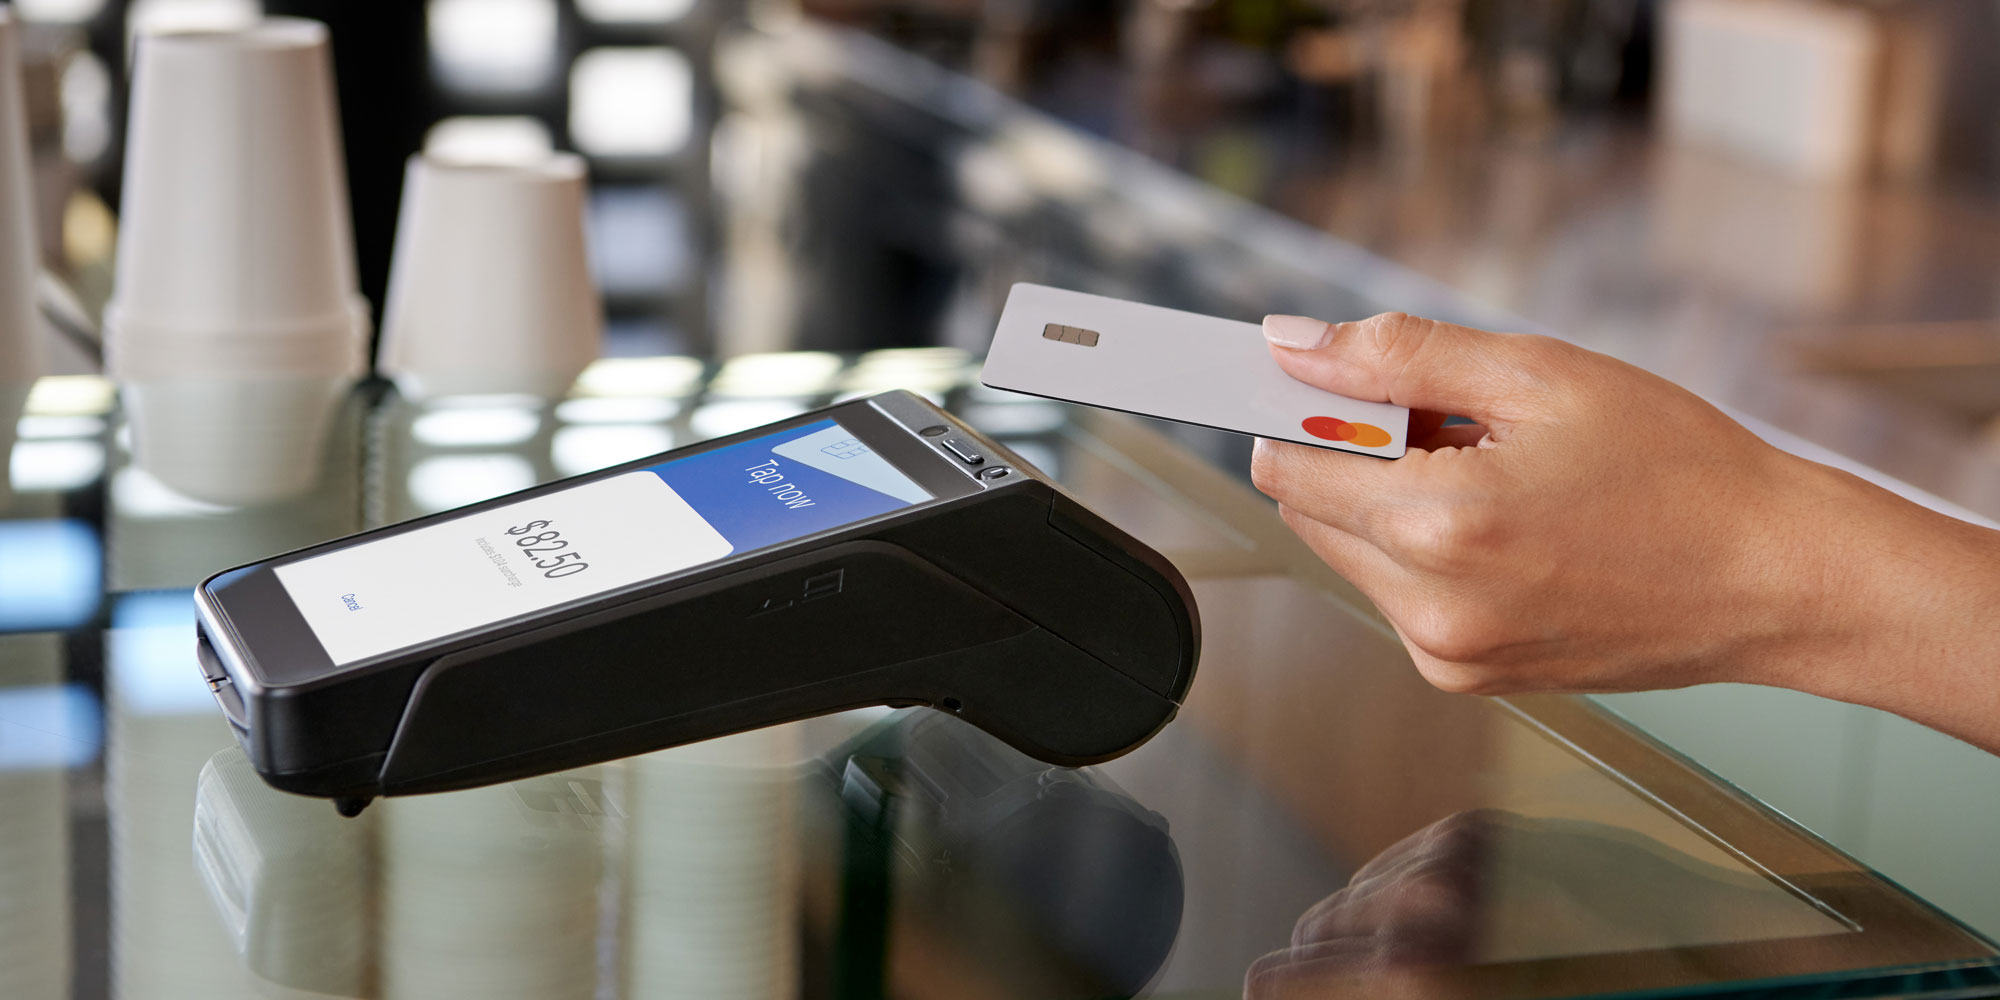 9 Questions to Ask When Shopping for an EFTPOS Terminal